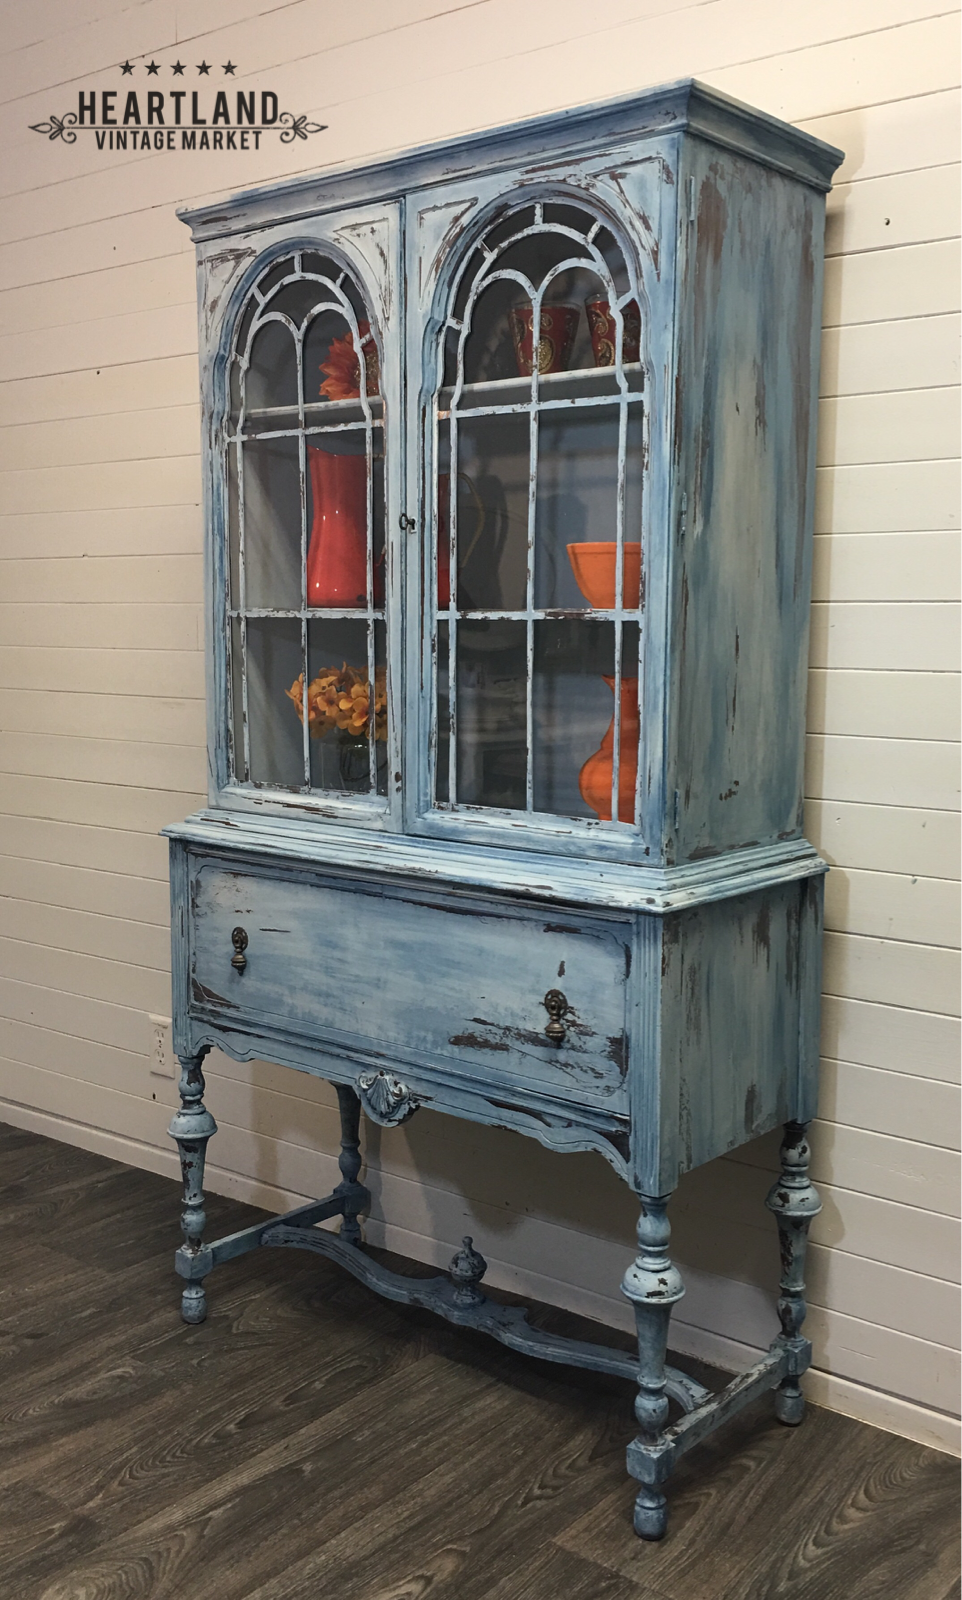 Layers Of Blue And White Chalk Paint Update This Lovely Antique China Cabinet Www Heartlandvintagemar Antique China Cabinets White Chalk Paint Lovely Antiques